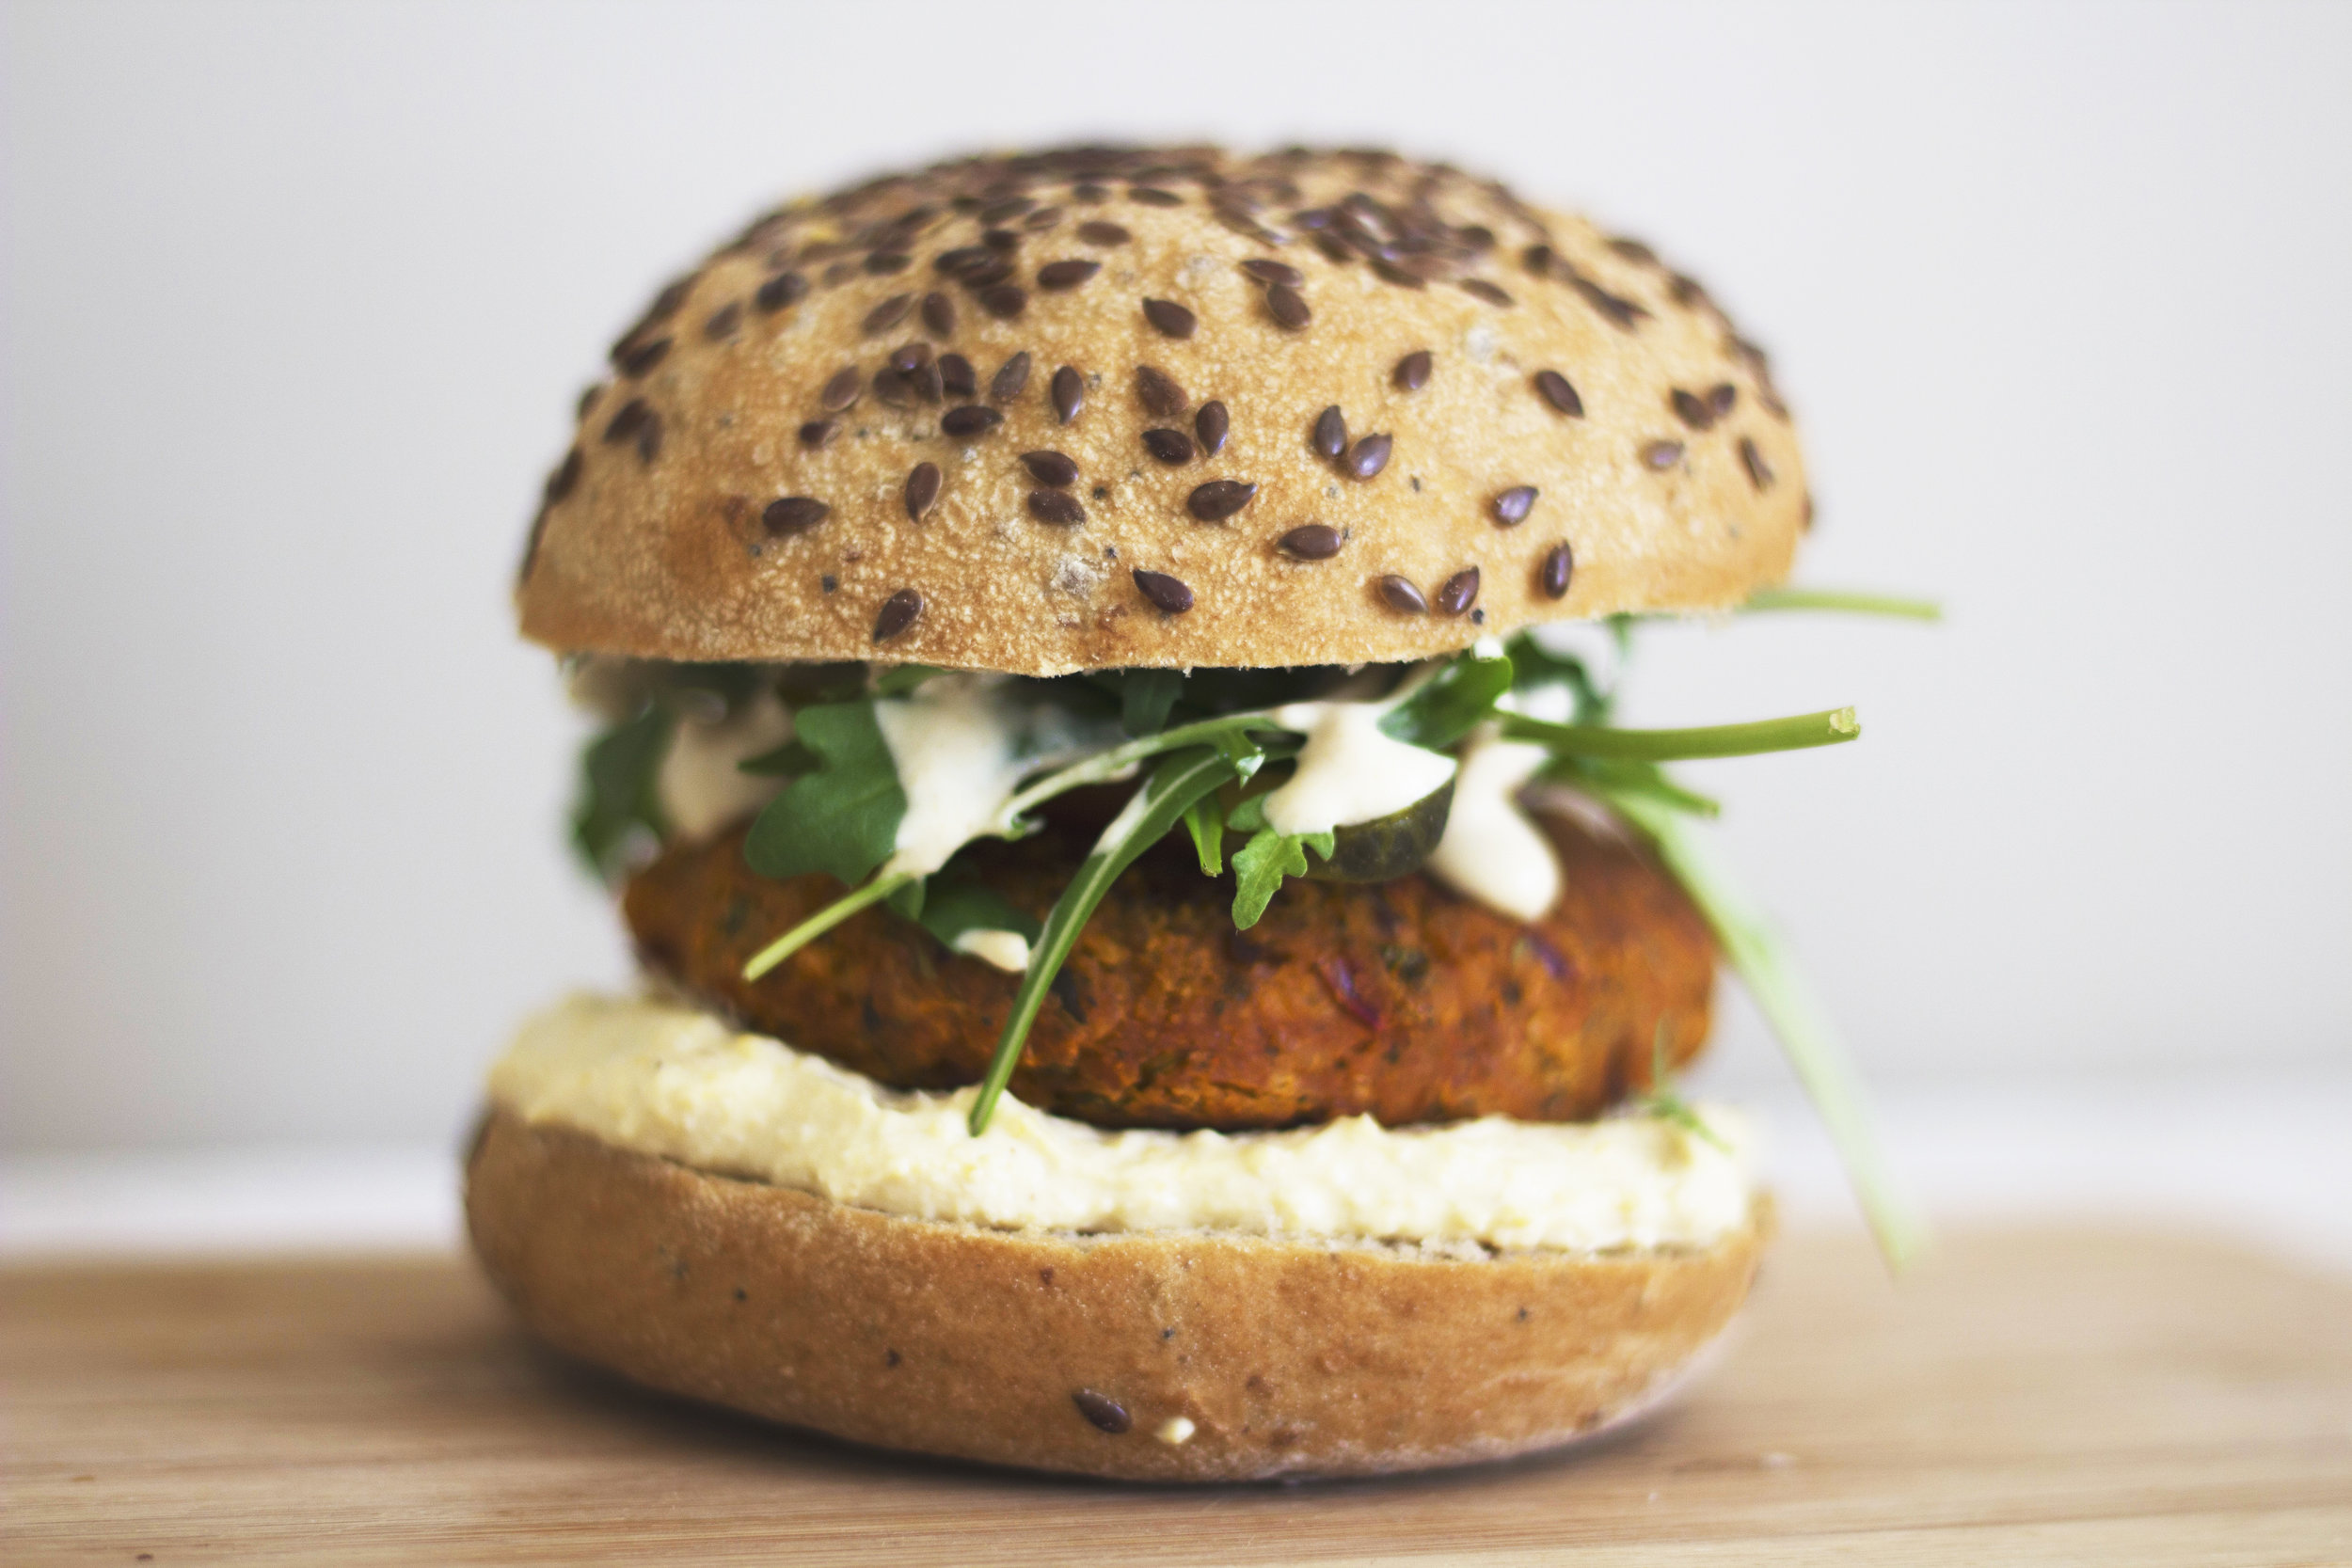 Chickpeas, spices, and herbs make these delicious vegan falafel patties. - prep time 5 mins     total time 20-40 mins     serves 4-5